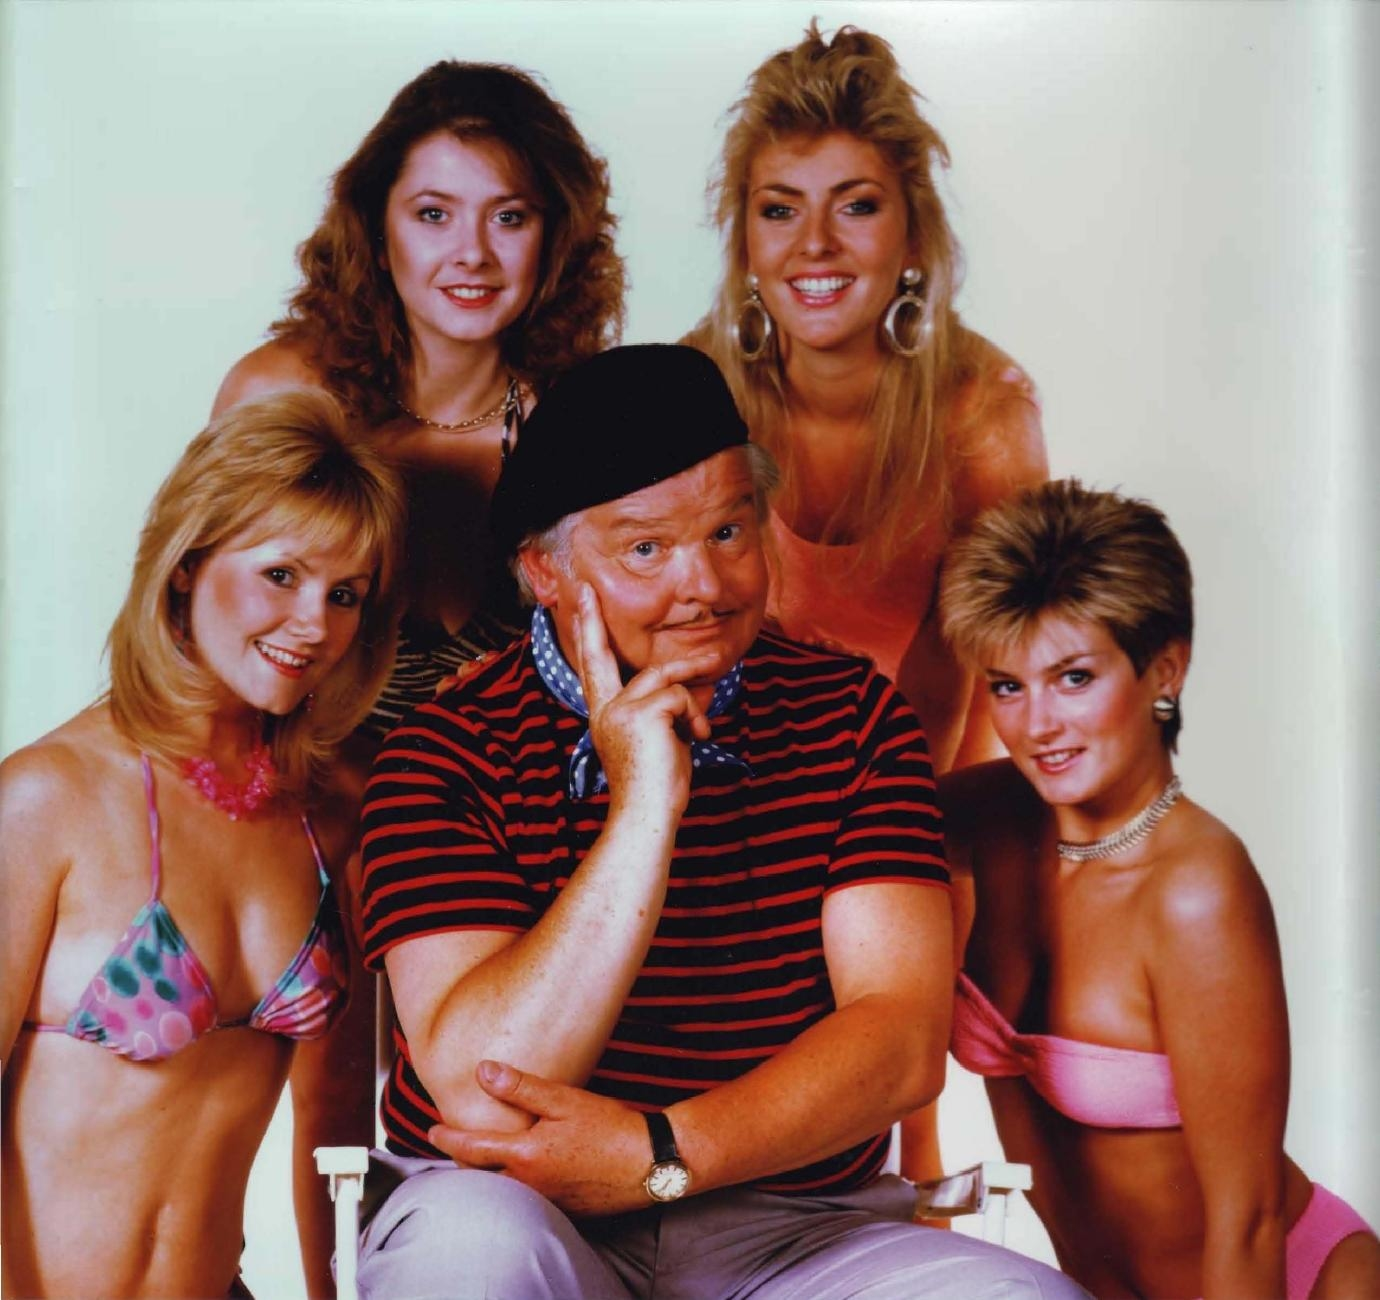 benny hill girls topless